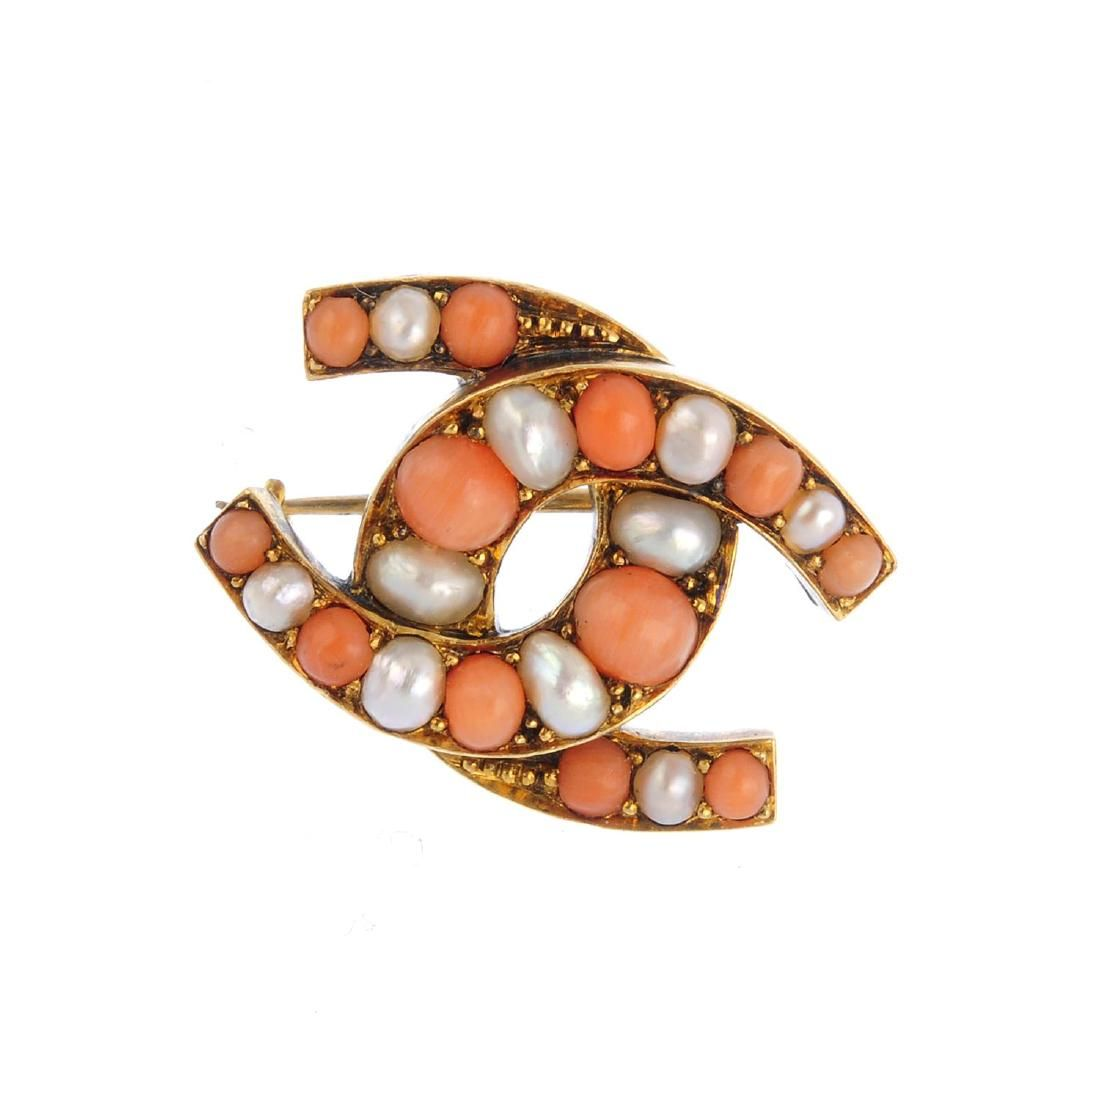 A late Victorian gold, coral and split pearl brooch.